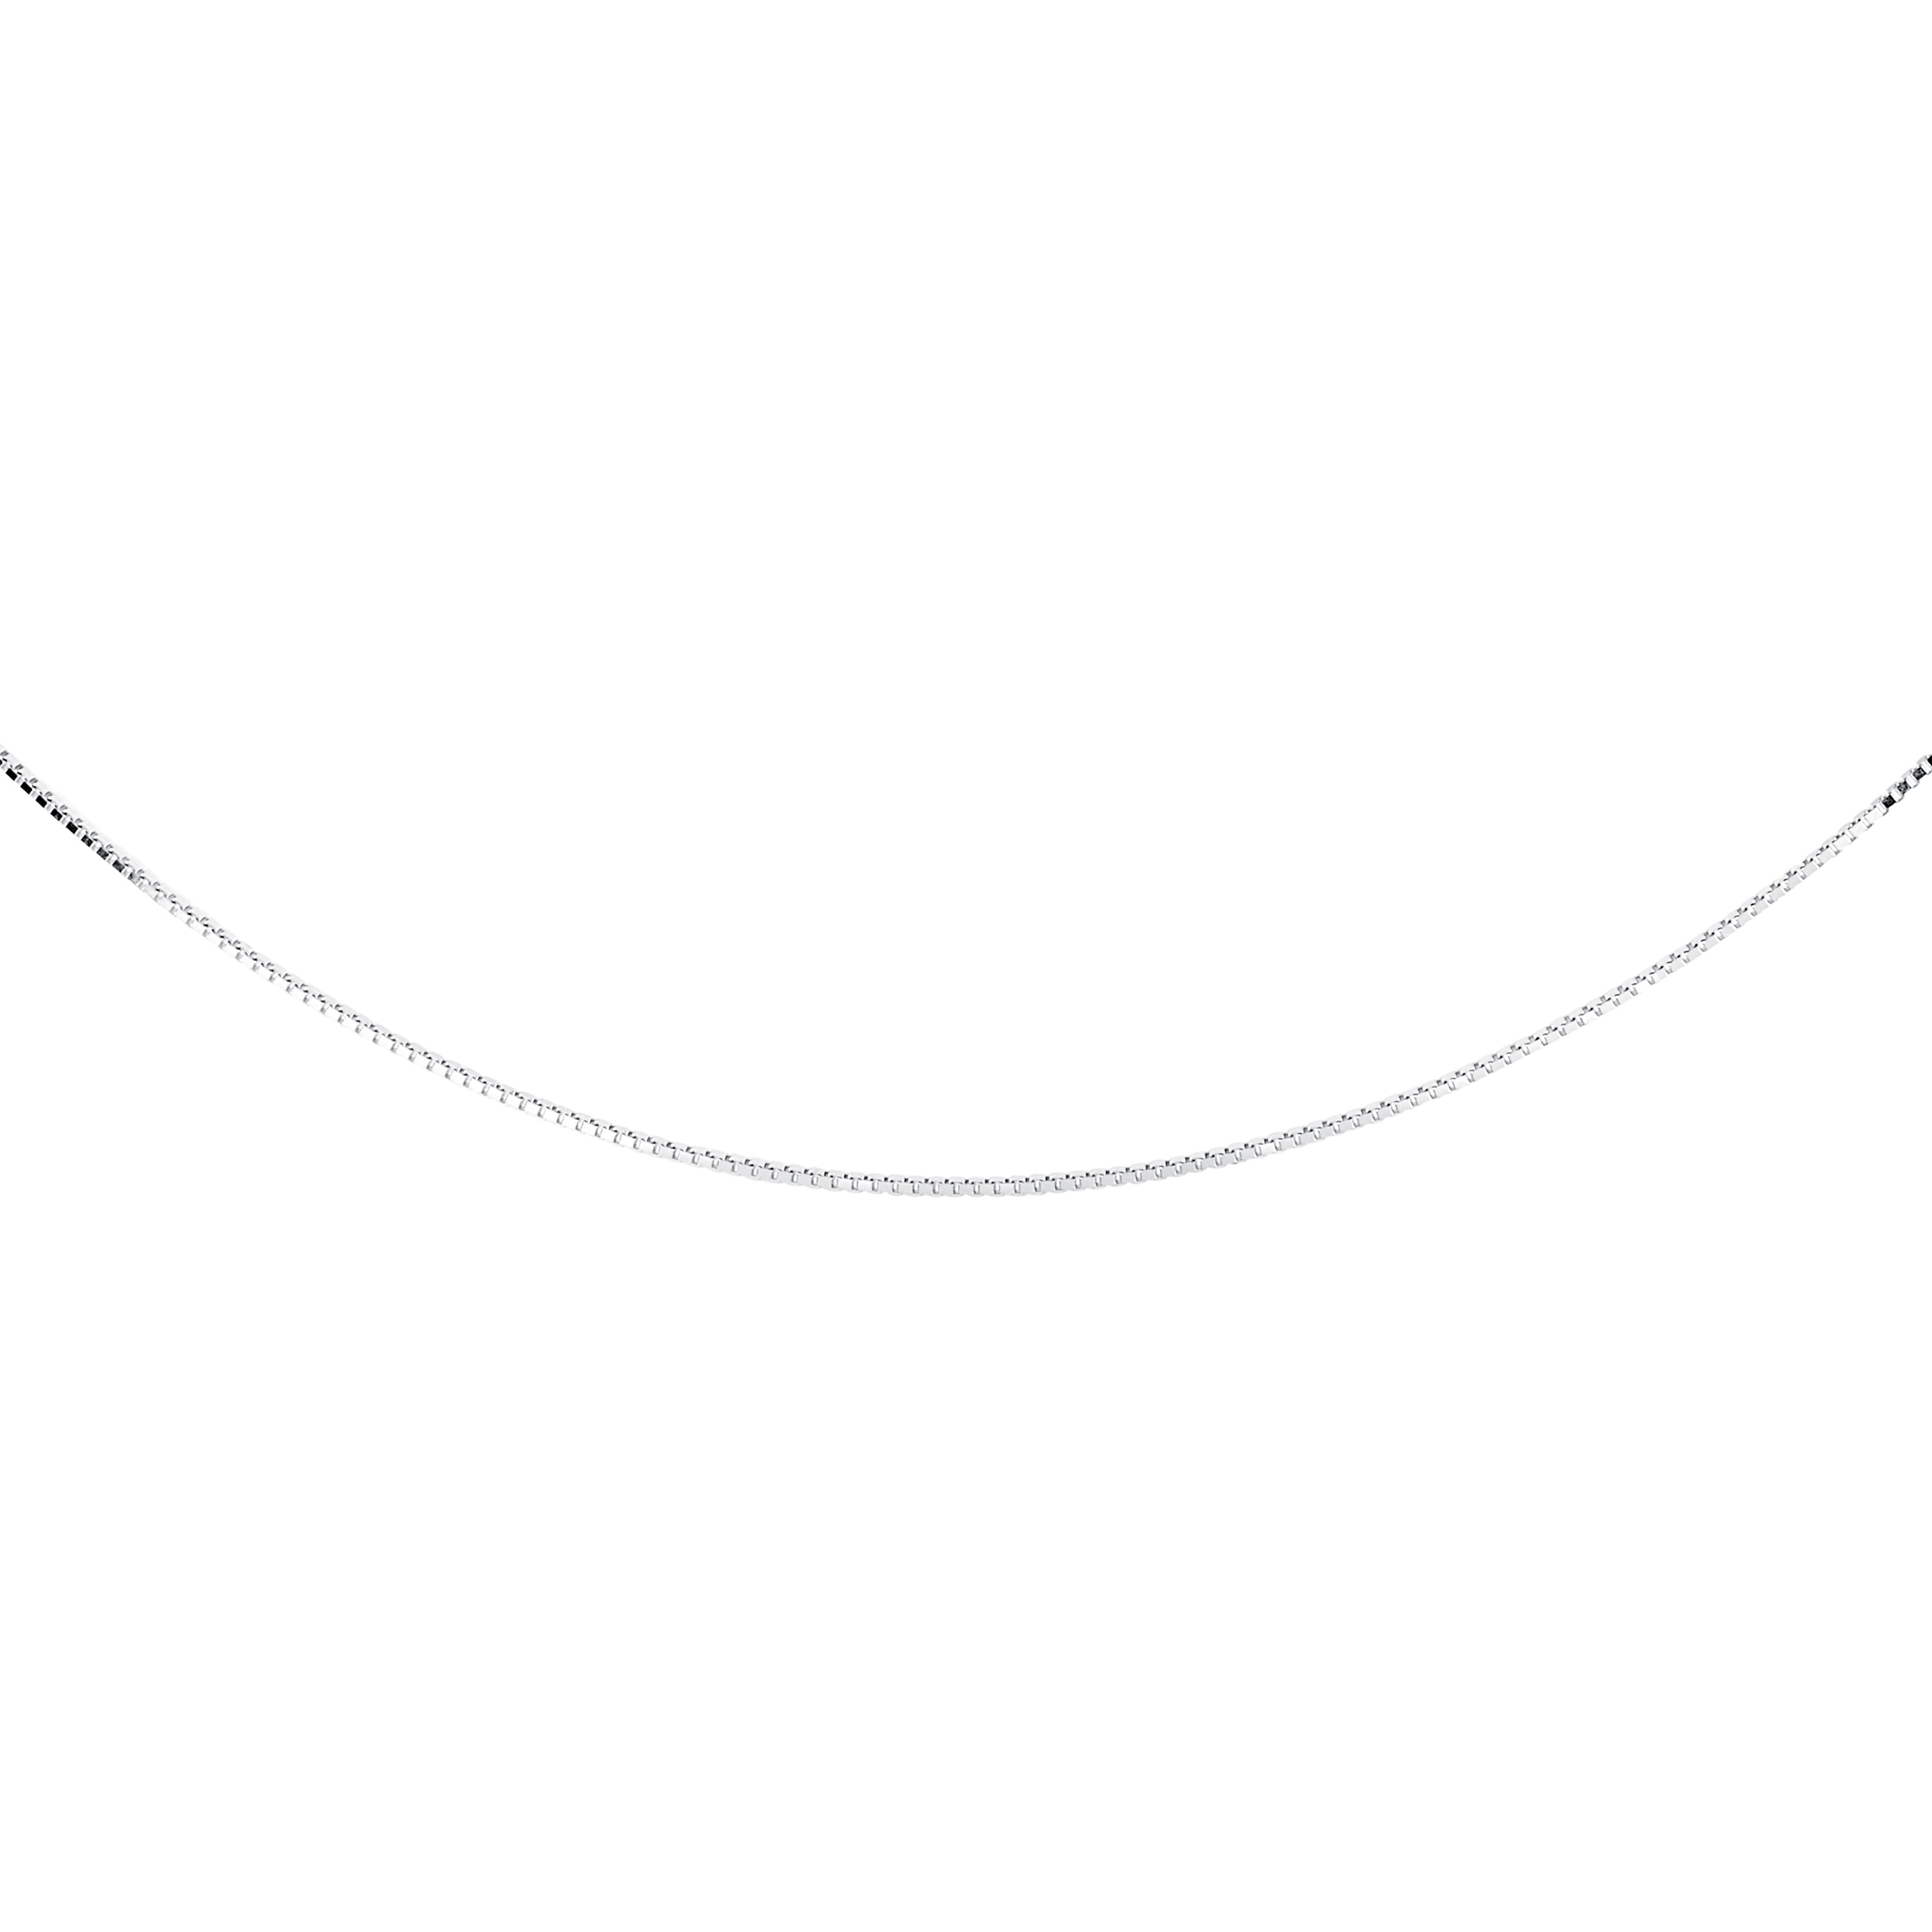 16'' box chain - Sterling silver & rhodium plated finish